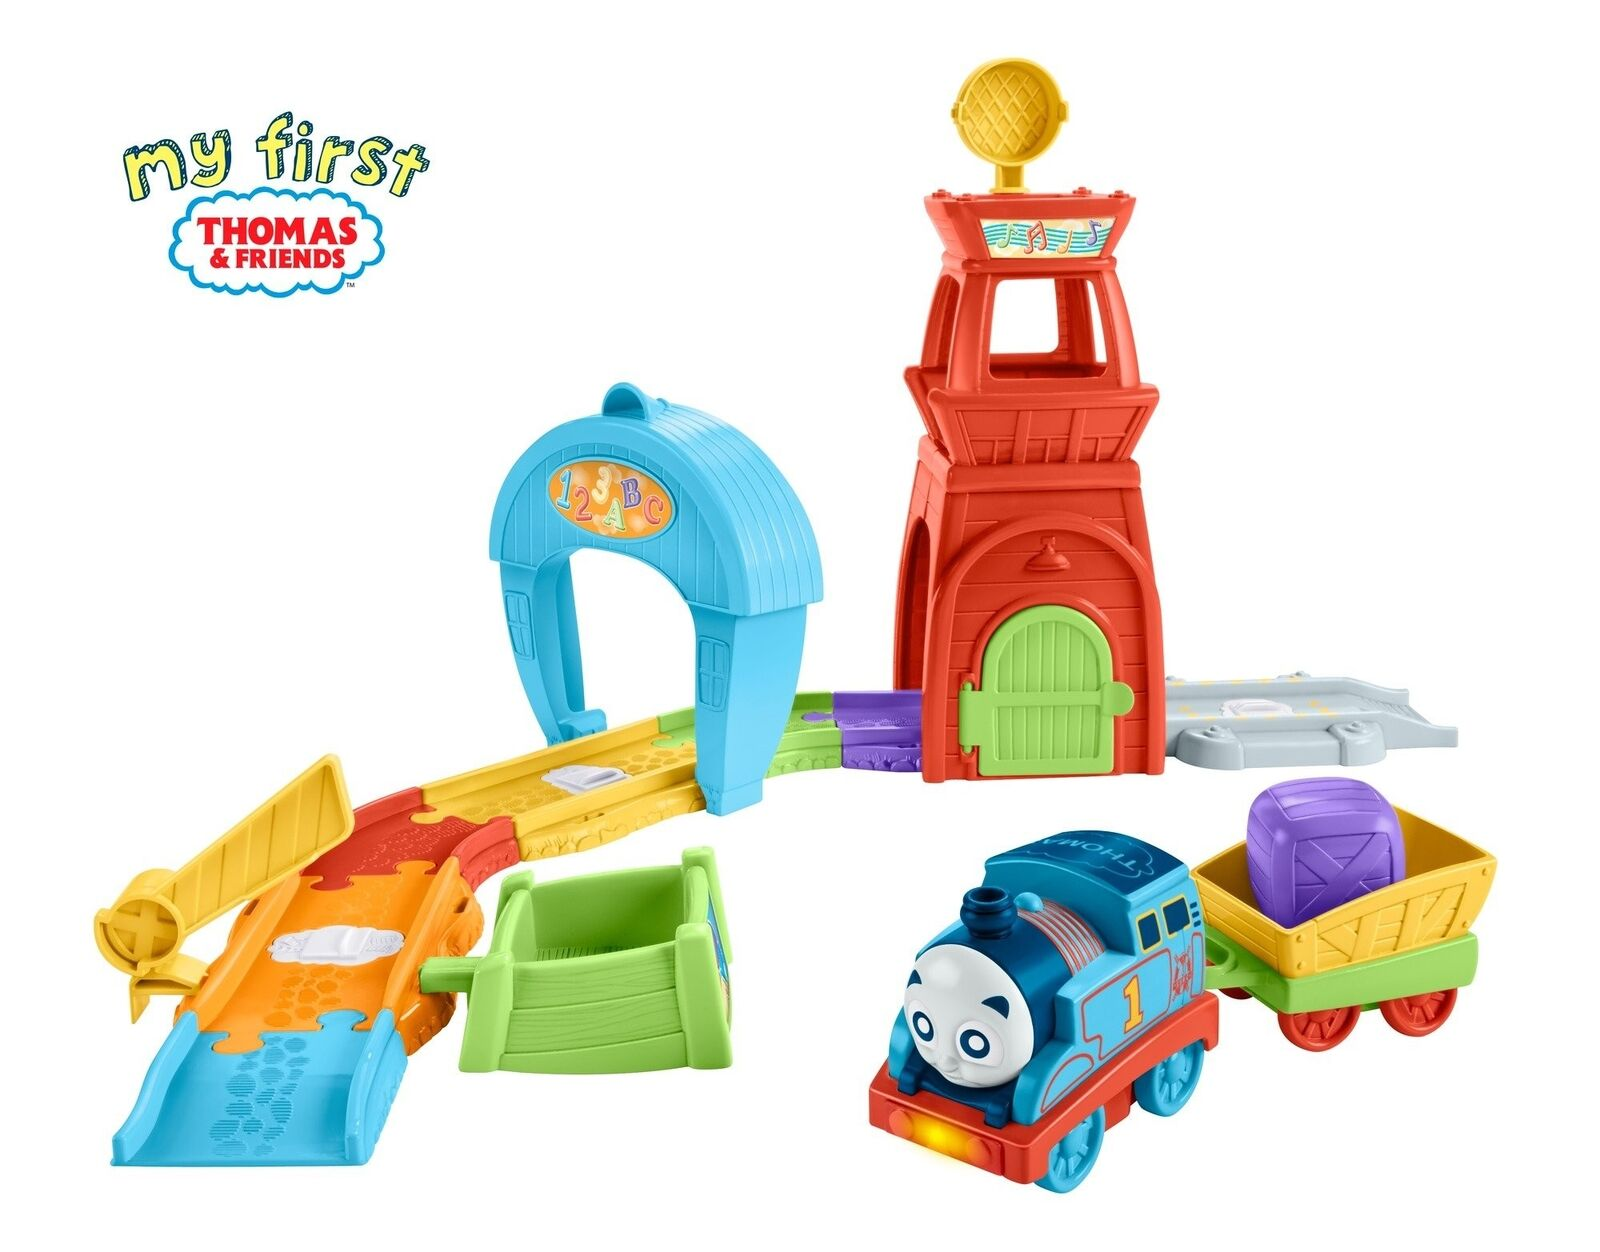 Thomas & Friends FKC81 Railway Pals Rescue Tower Set Thomas the Tank Engine ...